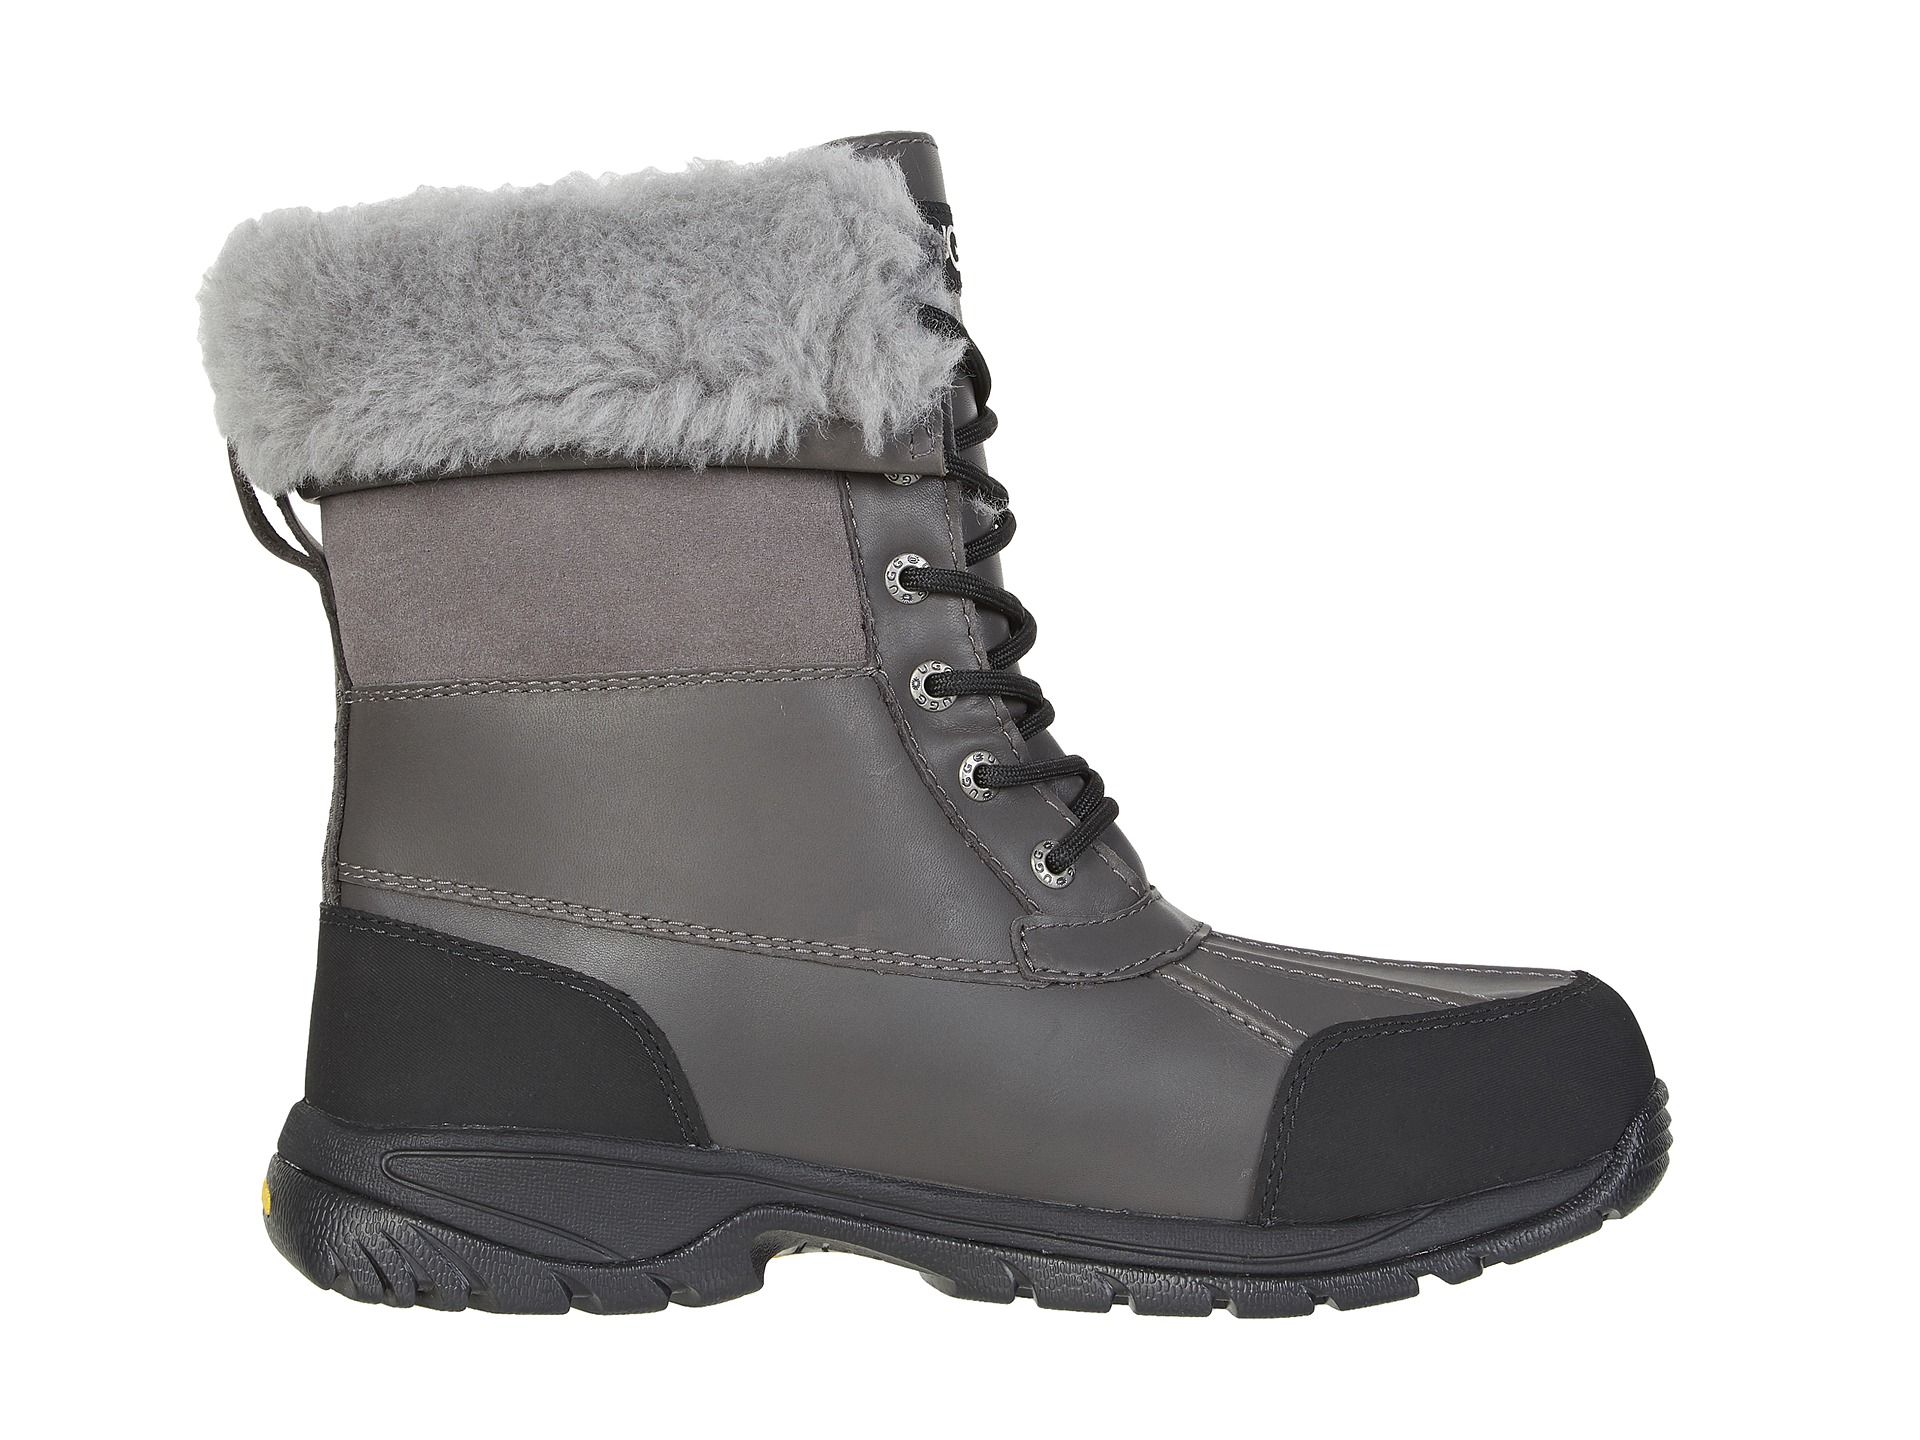 Ugg Butte Zappos Com Free Shipping Both Ways